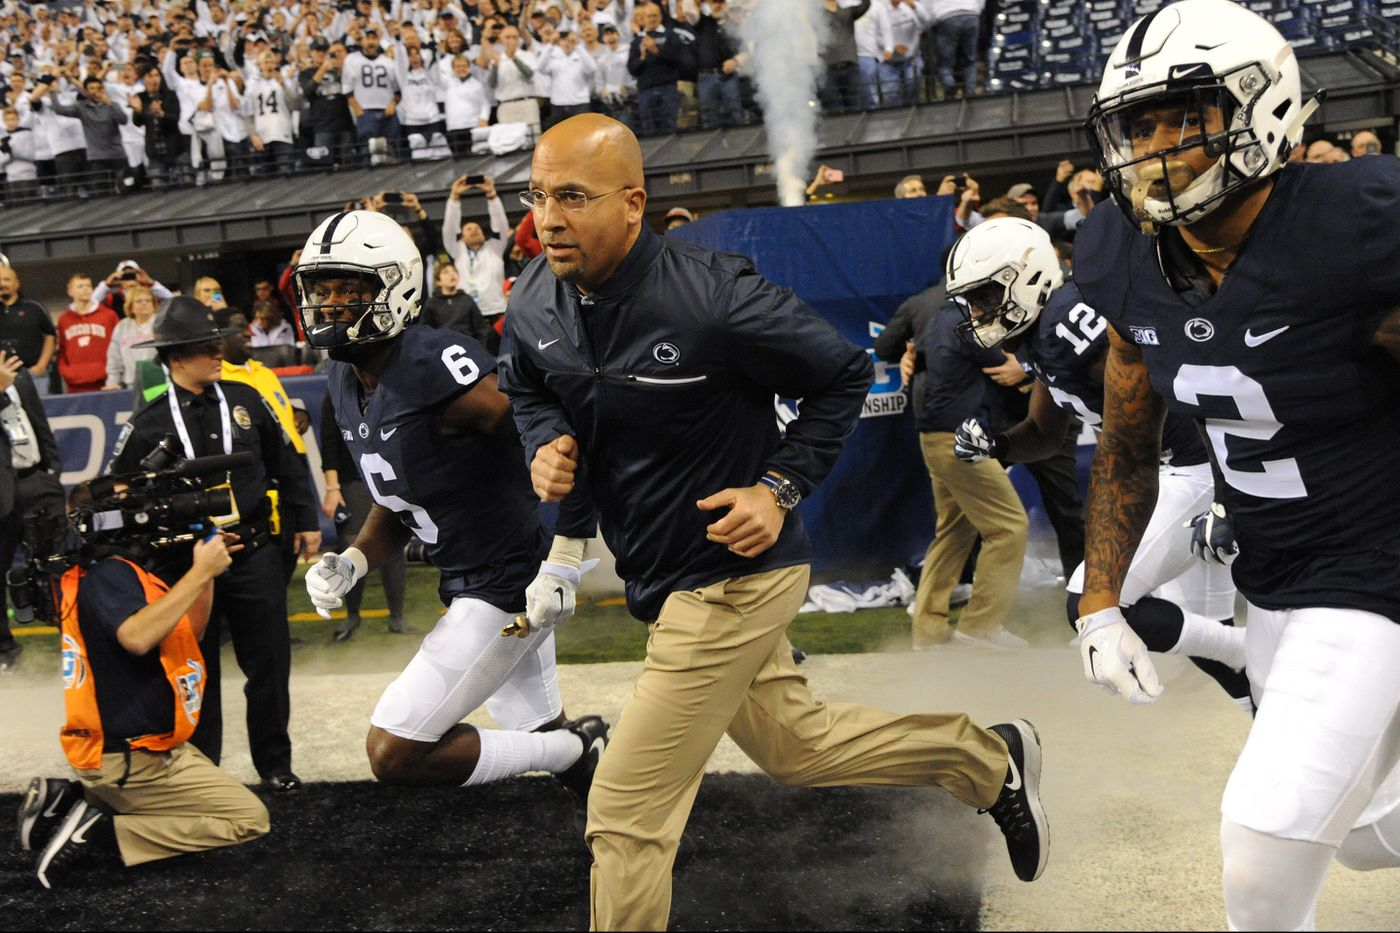 Penn State's season-opening foe, Appalachian State, may be an underdog, but it's not scared